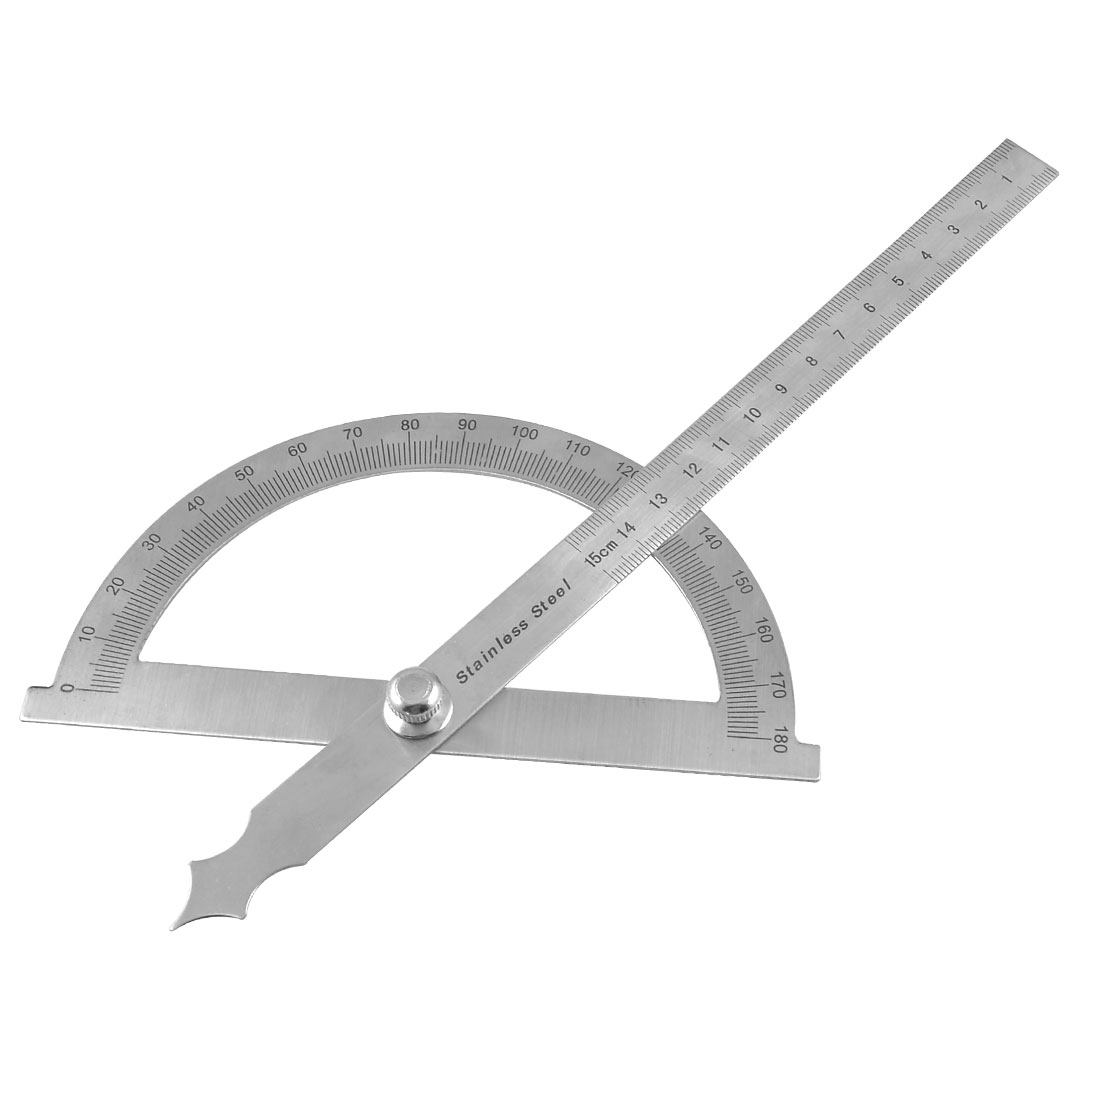 Gray Stainless Steel Rotating 180 Degree Mesurement Protractor Metric 15cm Ruler